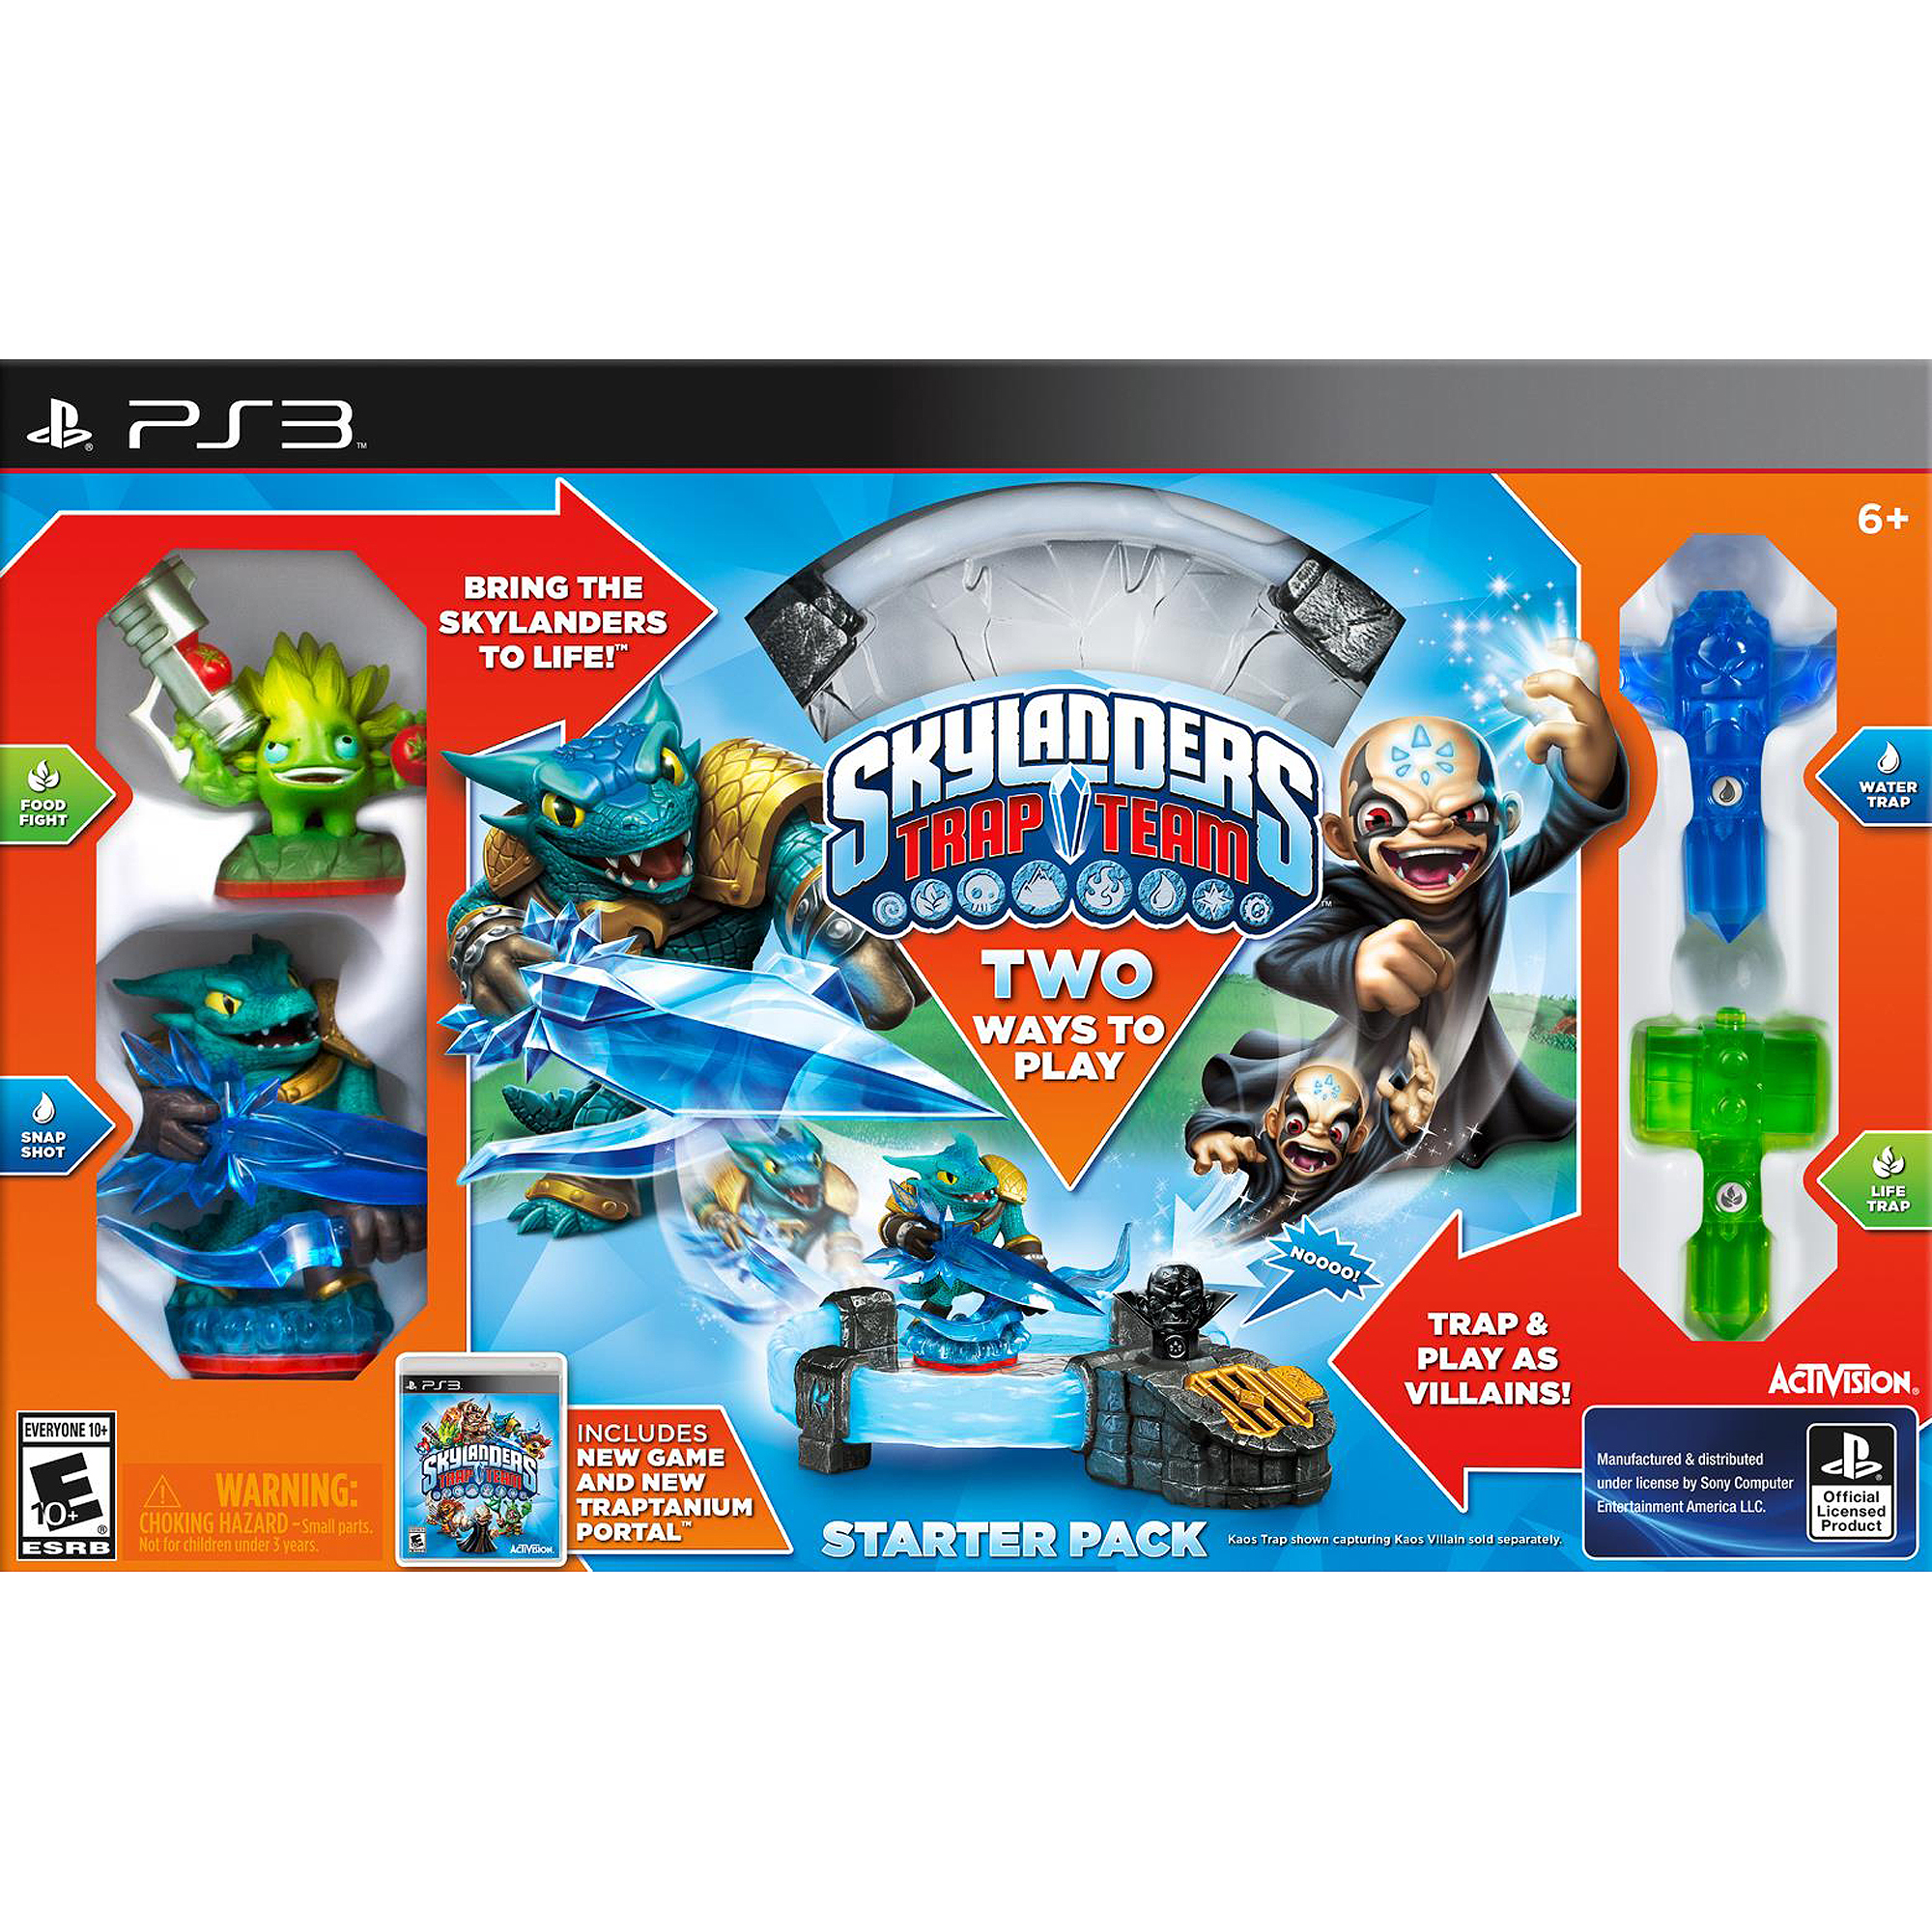 Skylanders Trap Team Starter Kit (Playstation 3) Activision by Toys For Bob